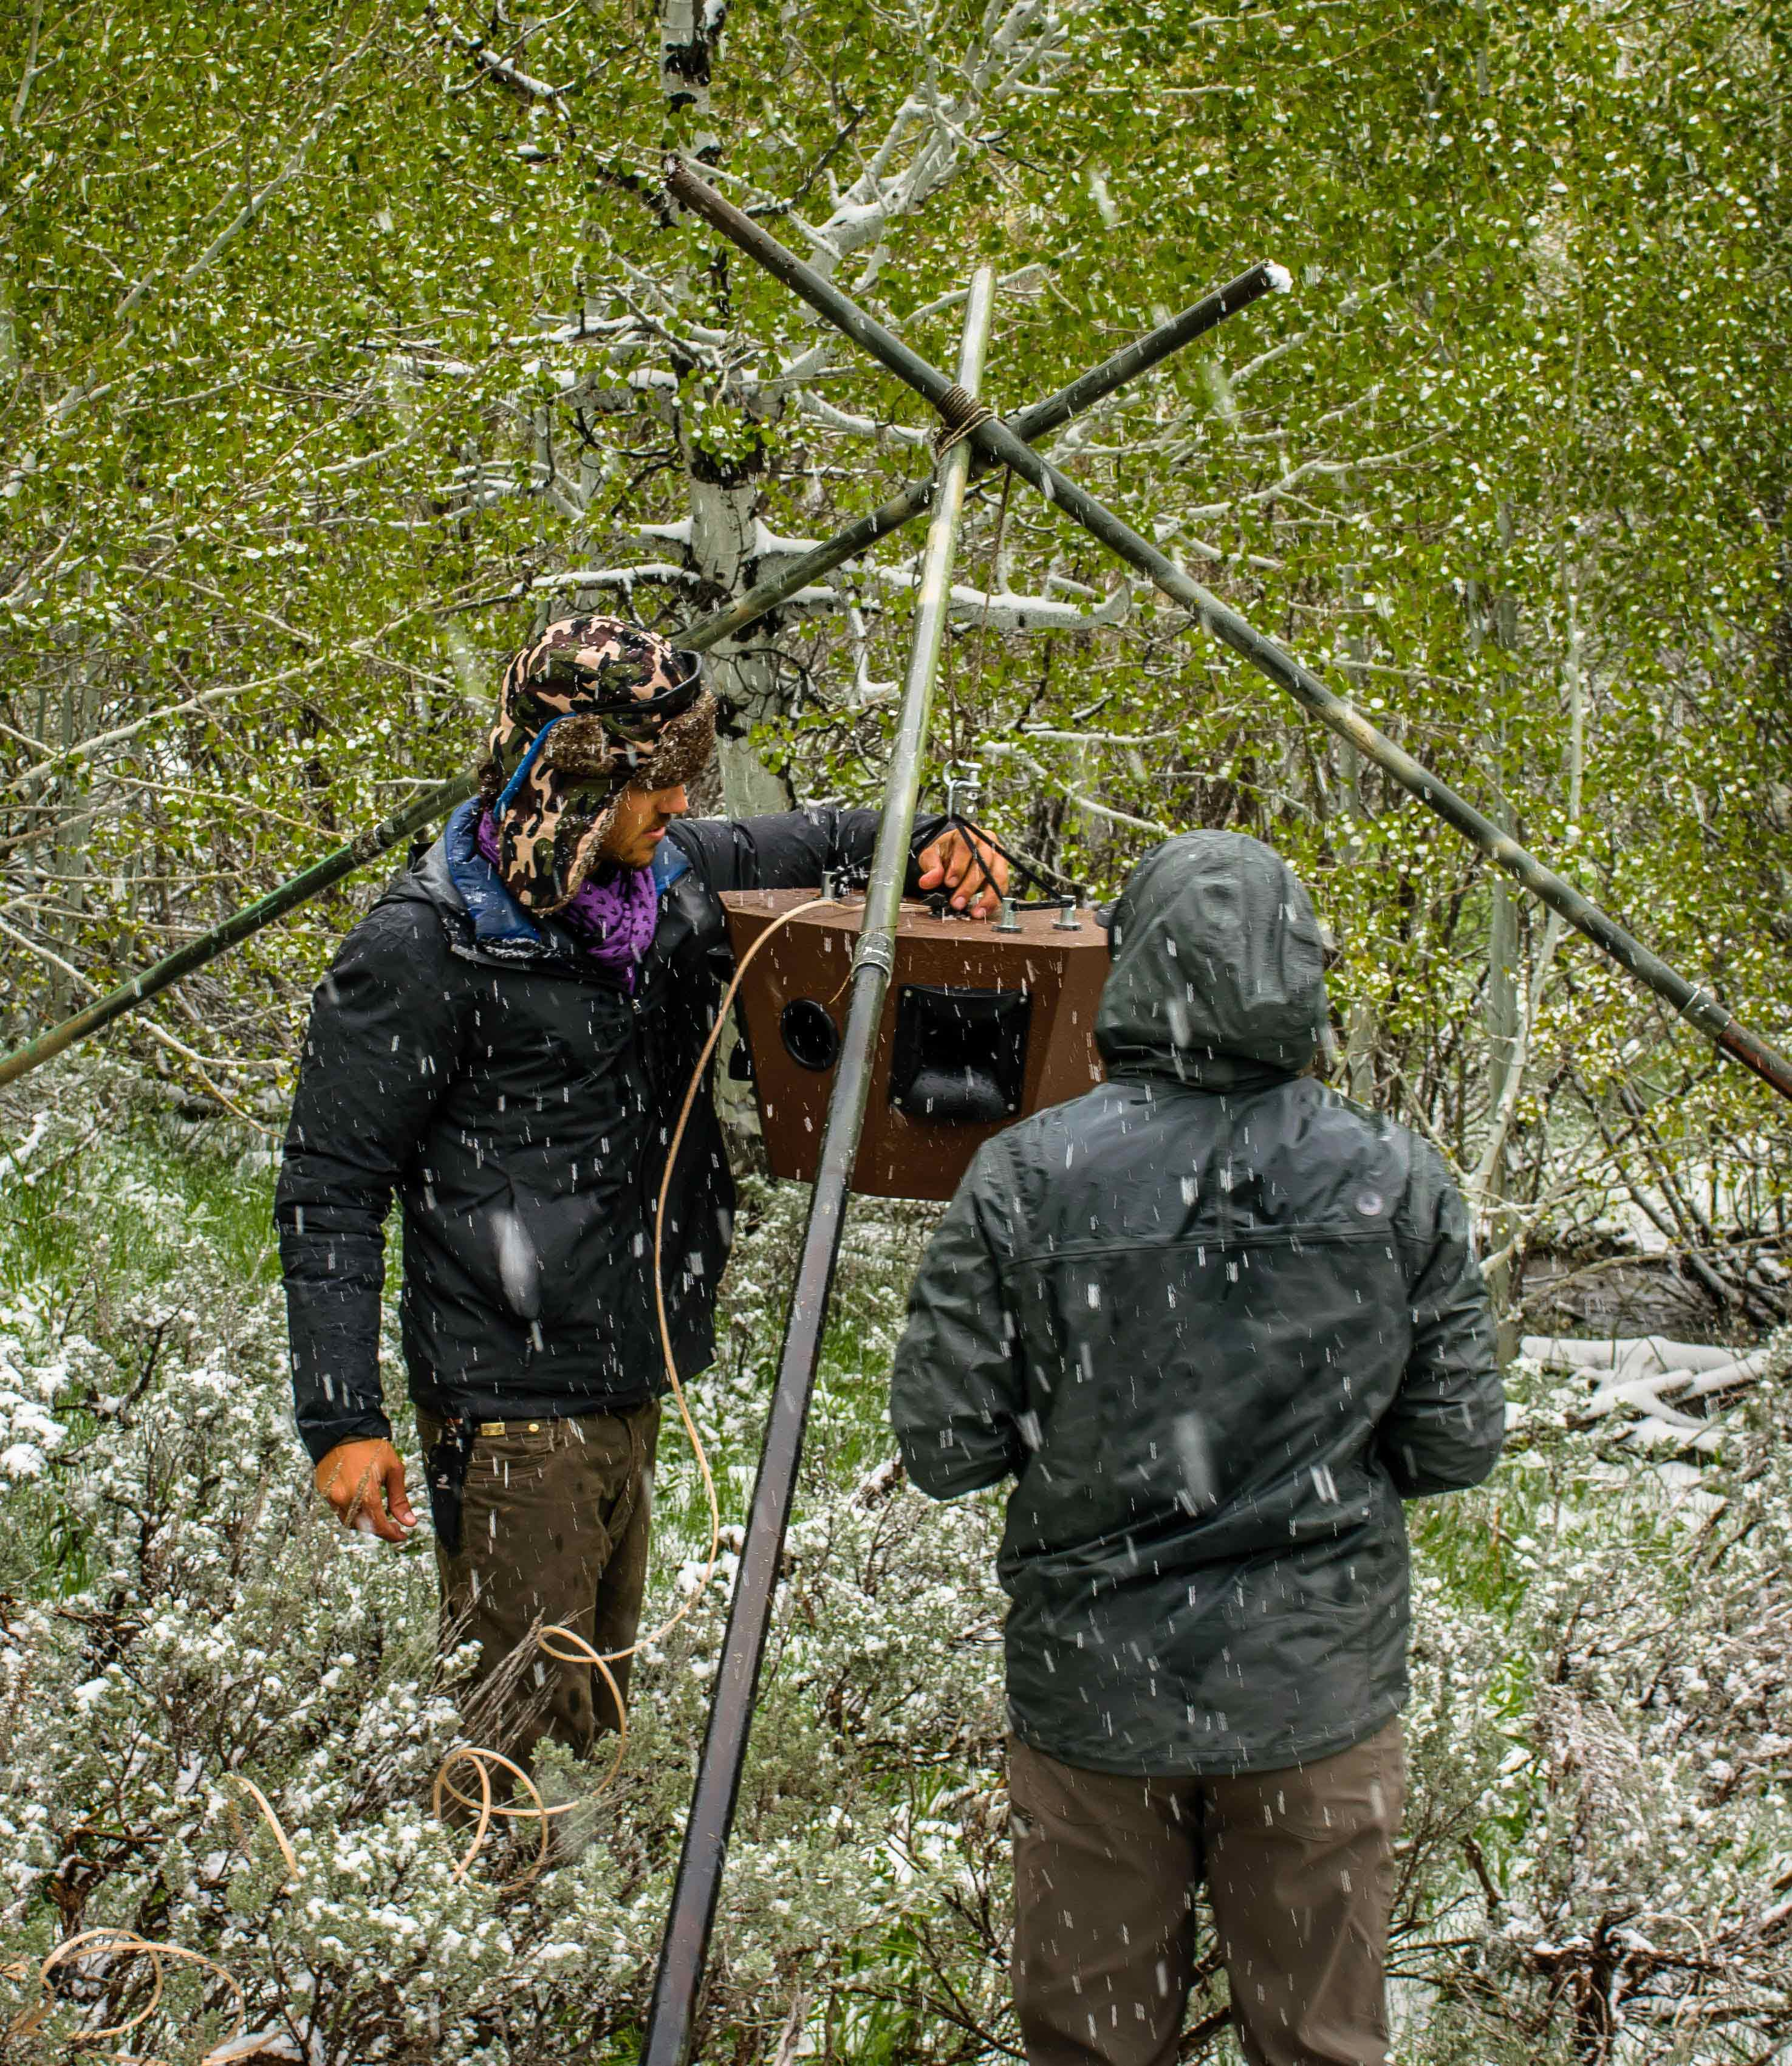 Cuesta College alumnus Dylan Gomes, left, led the research team that deployed speaker arrays early in the spring in Idaho's Pine Mountains to begin playback of whitewater river noise before most birds and bats were using this 5,000- to 7,000-foot elevation area. The study was a collaboration between Cal Poly and Boise State, where Gomes was doing his doctoral research.